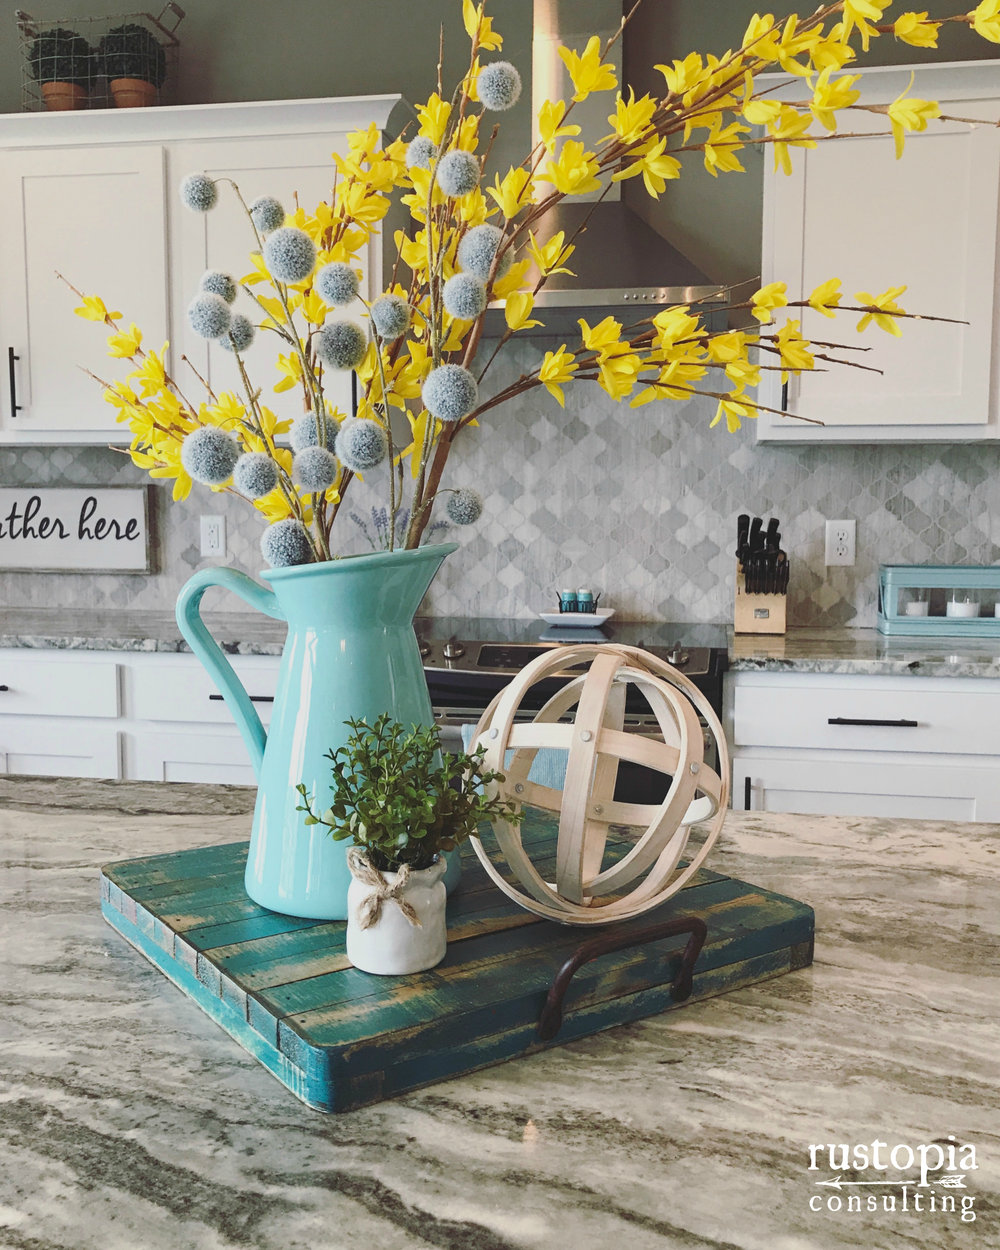 Kitchen vignette using a tray, pitcher, floral stems, and an orb. | RustopiaConsulting.com